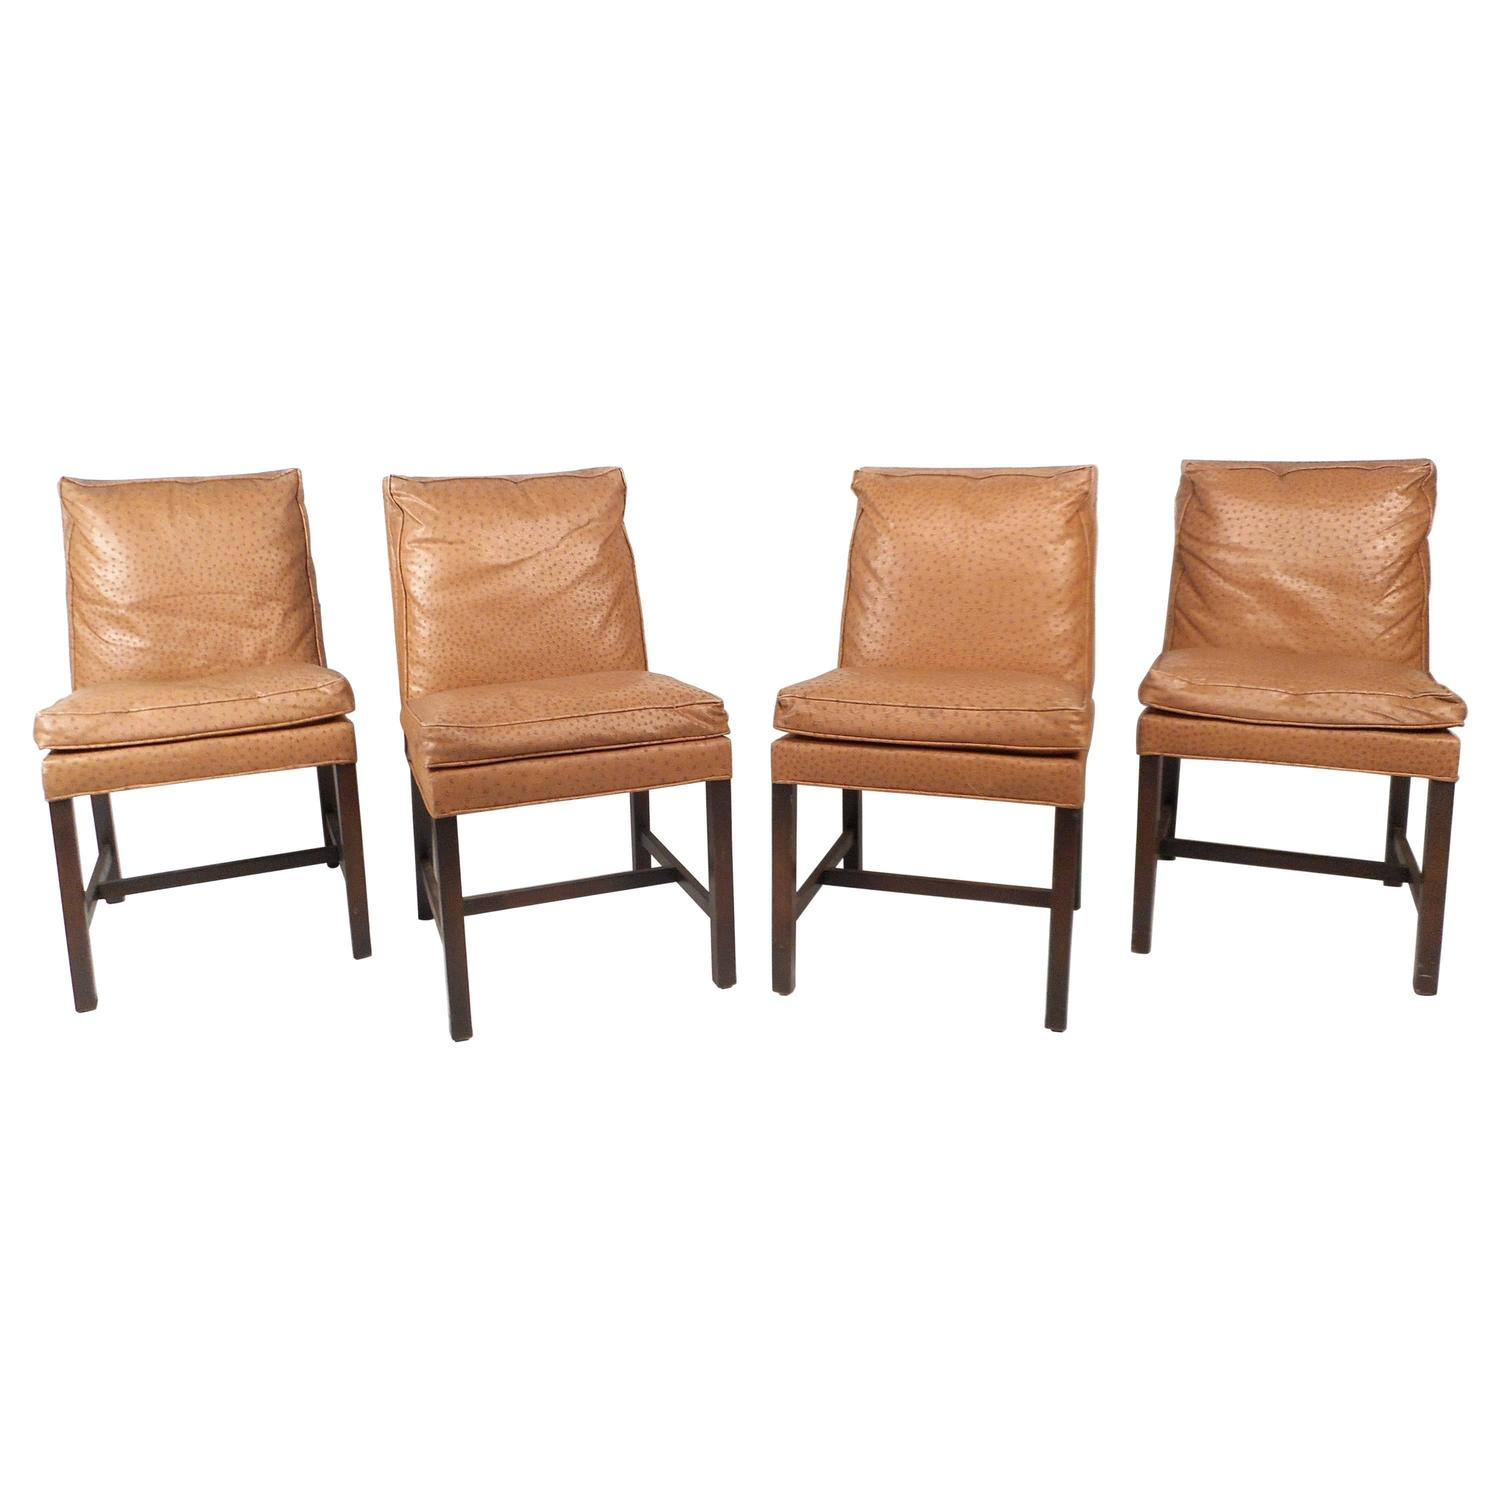 Set Of Mid Century Modern Faux Ostrich Covered Dining Chairs For Sale At  1stdibs